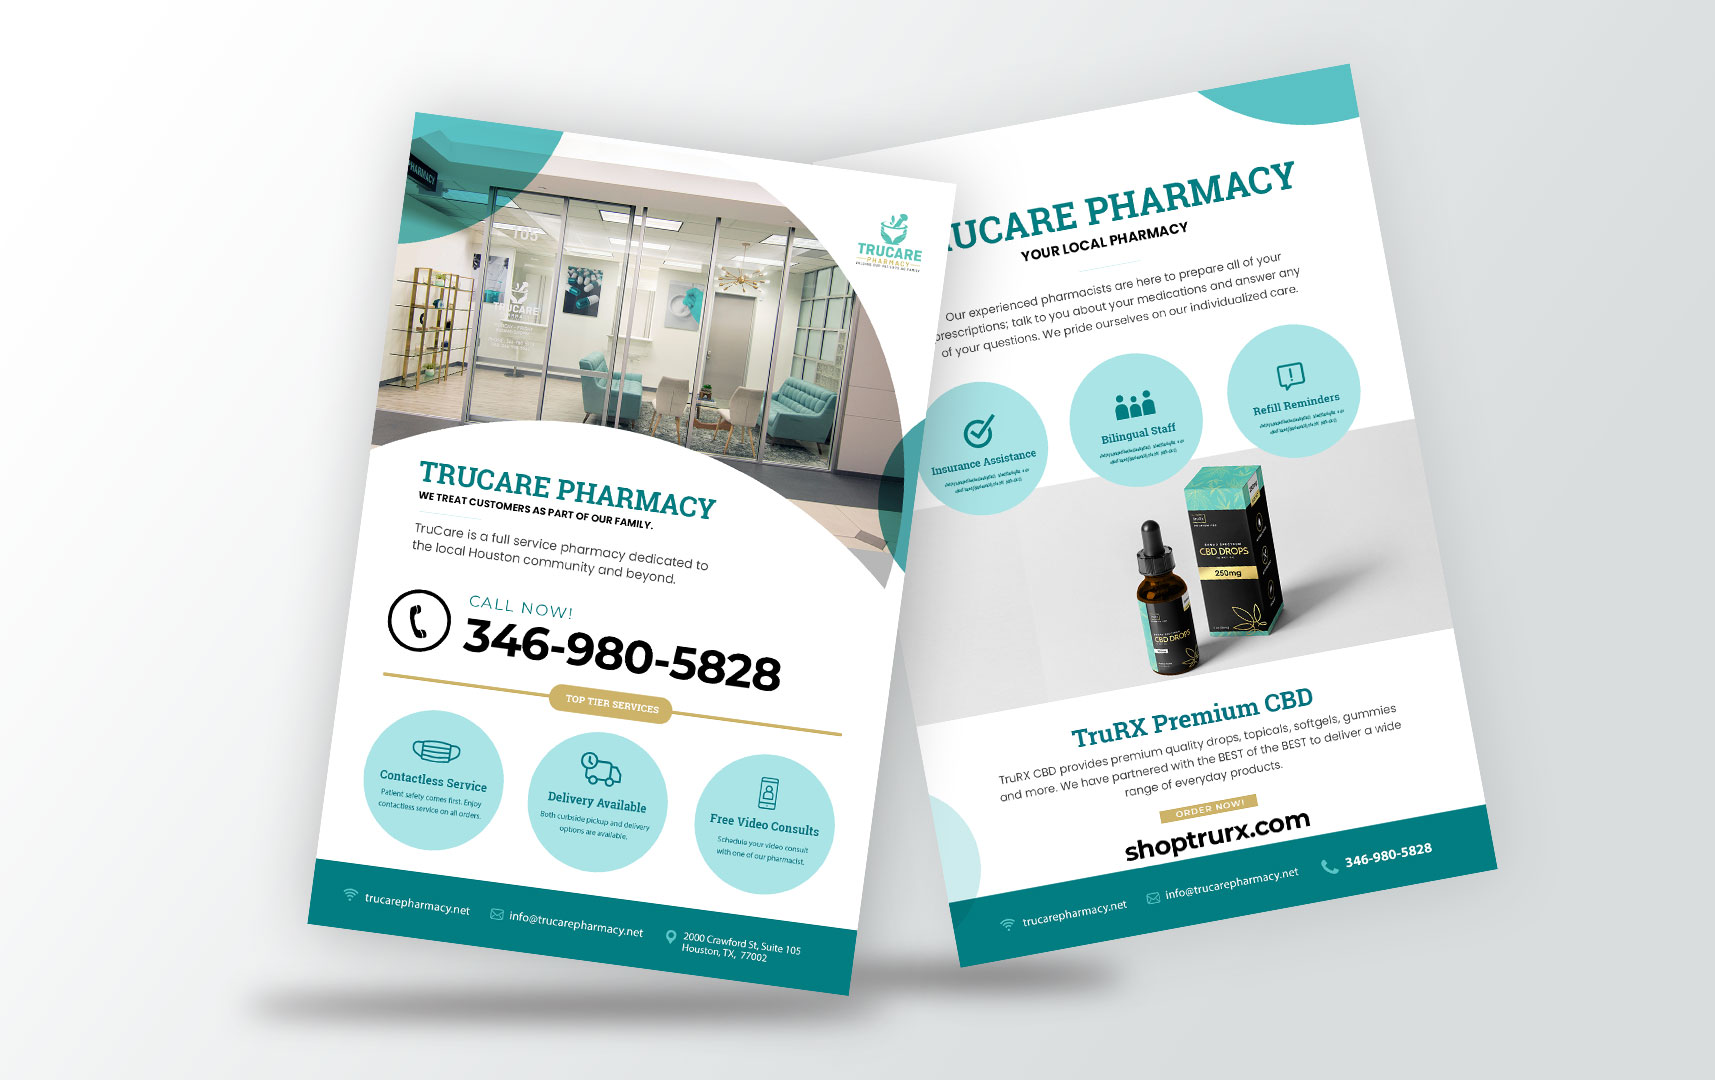 Pheelosophy Trucare Pharmacy Houston Texas Flyer